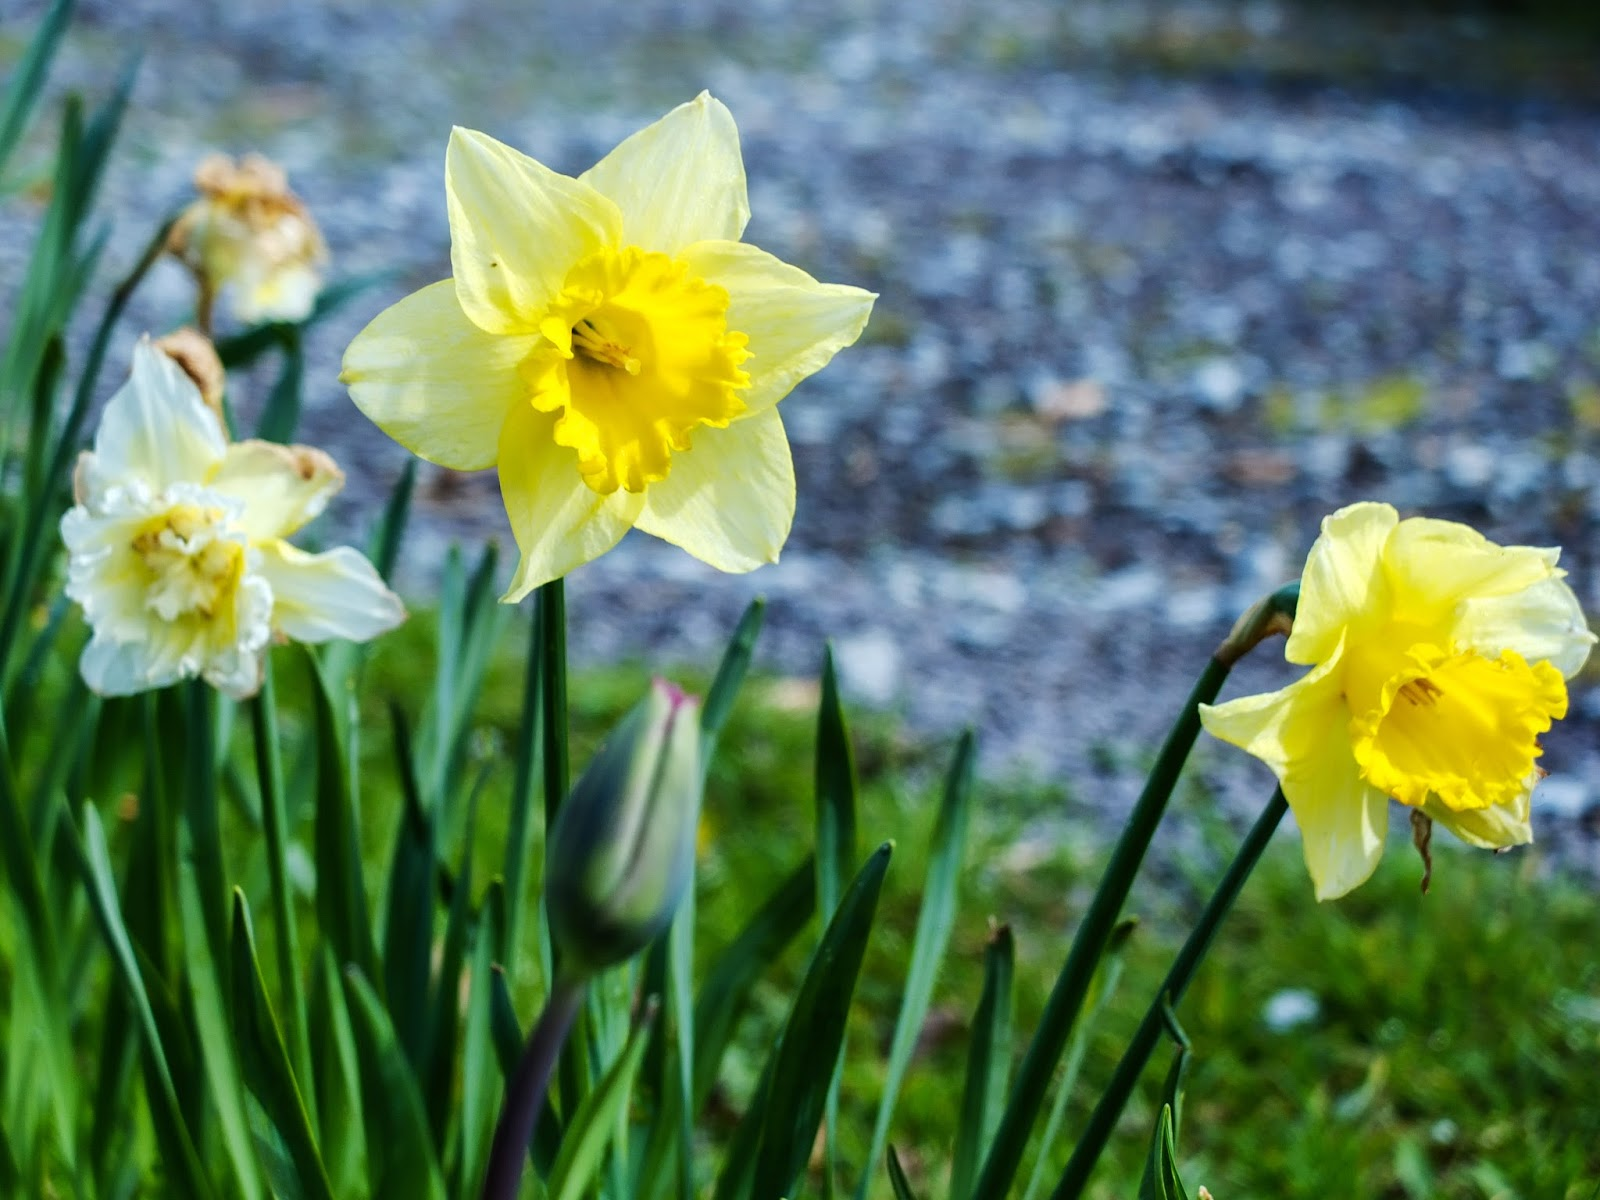 Light yellow and white daffodils pictured in sunlight.